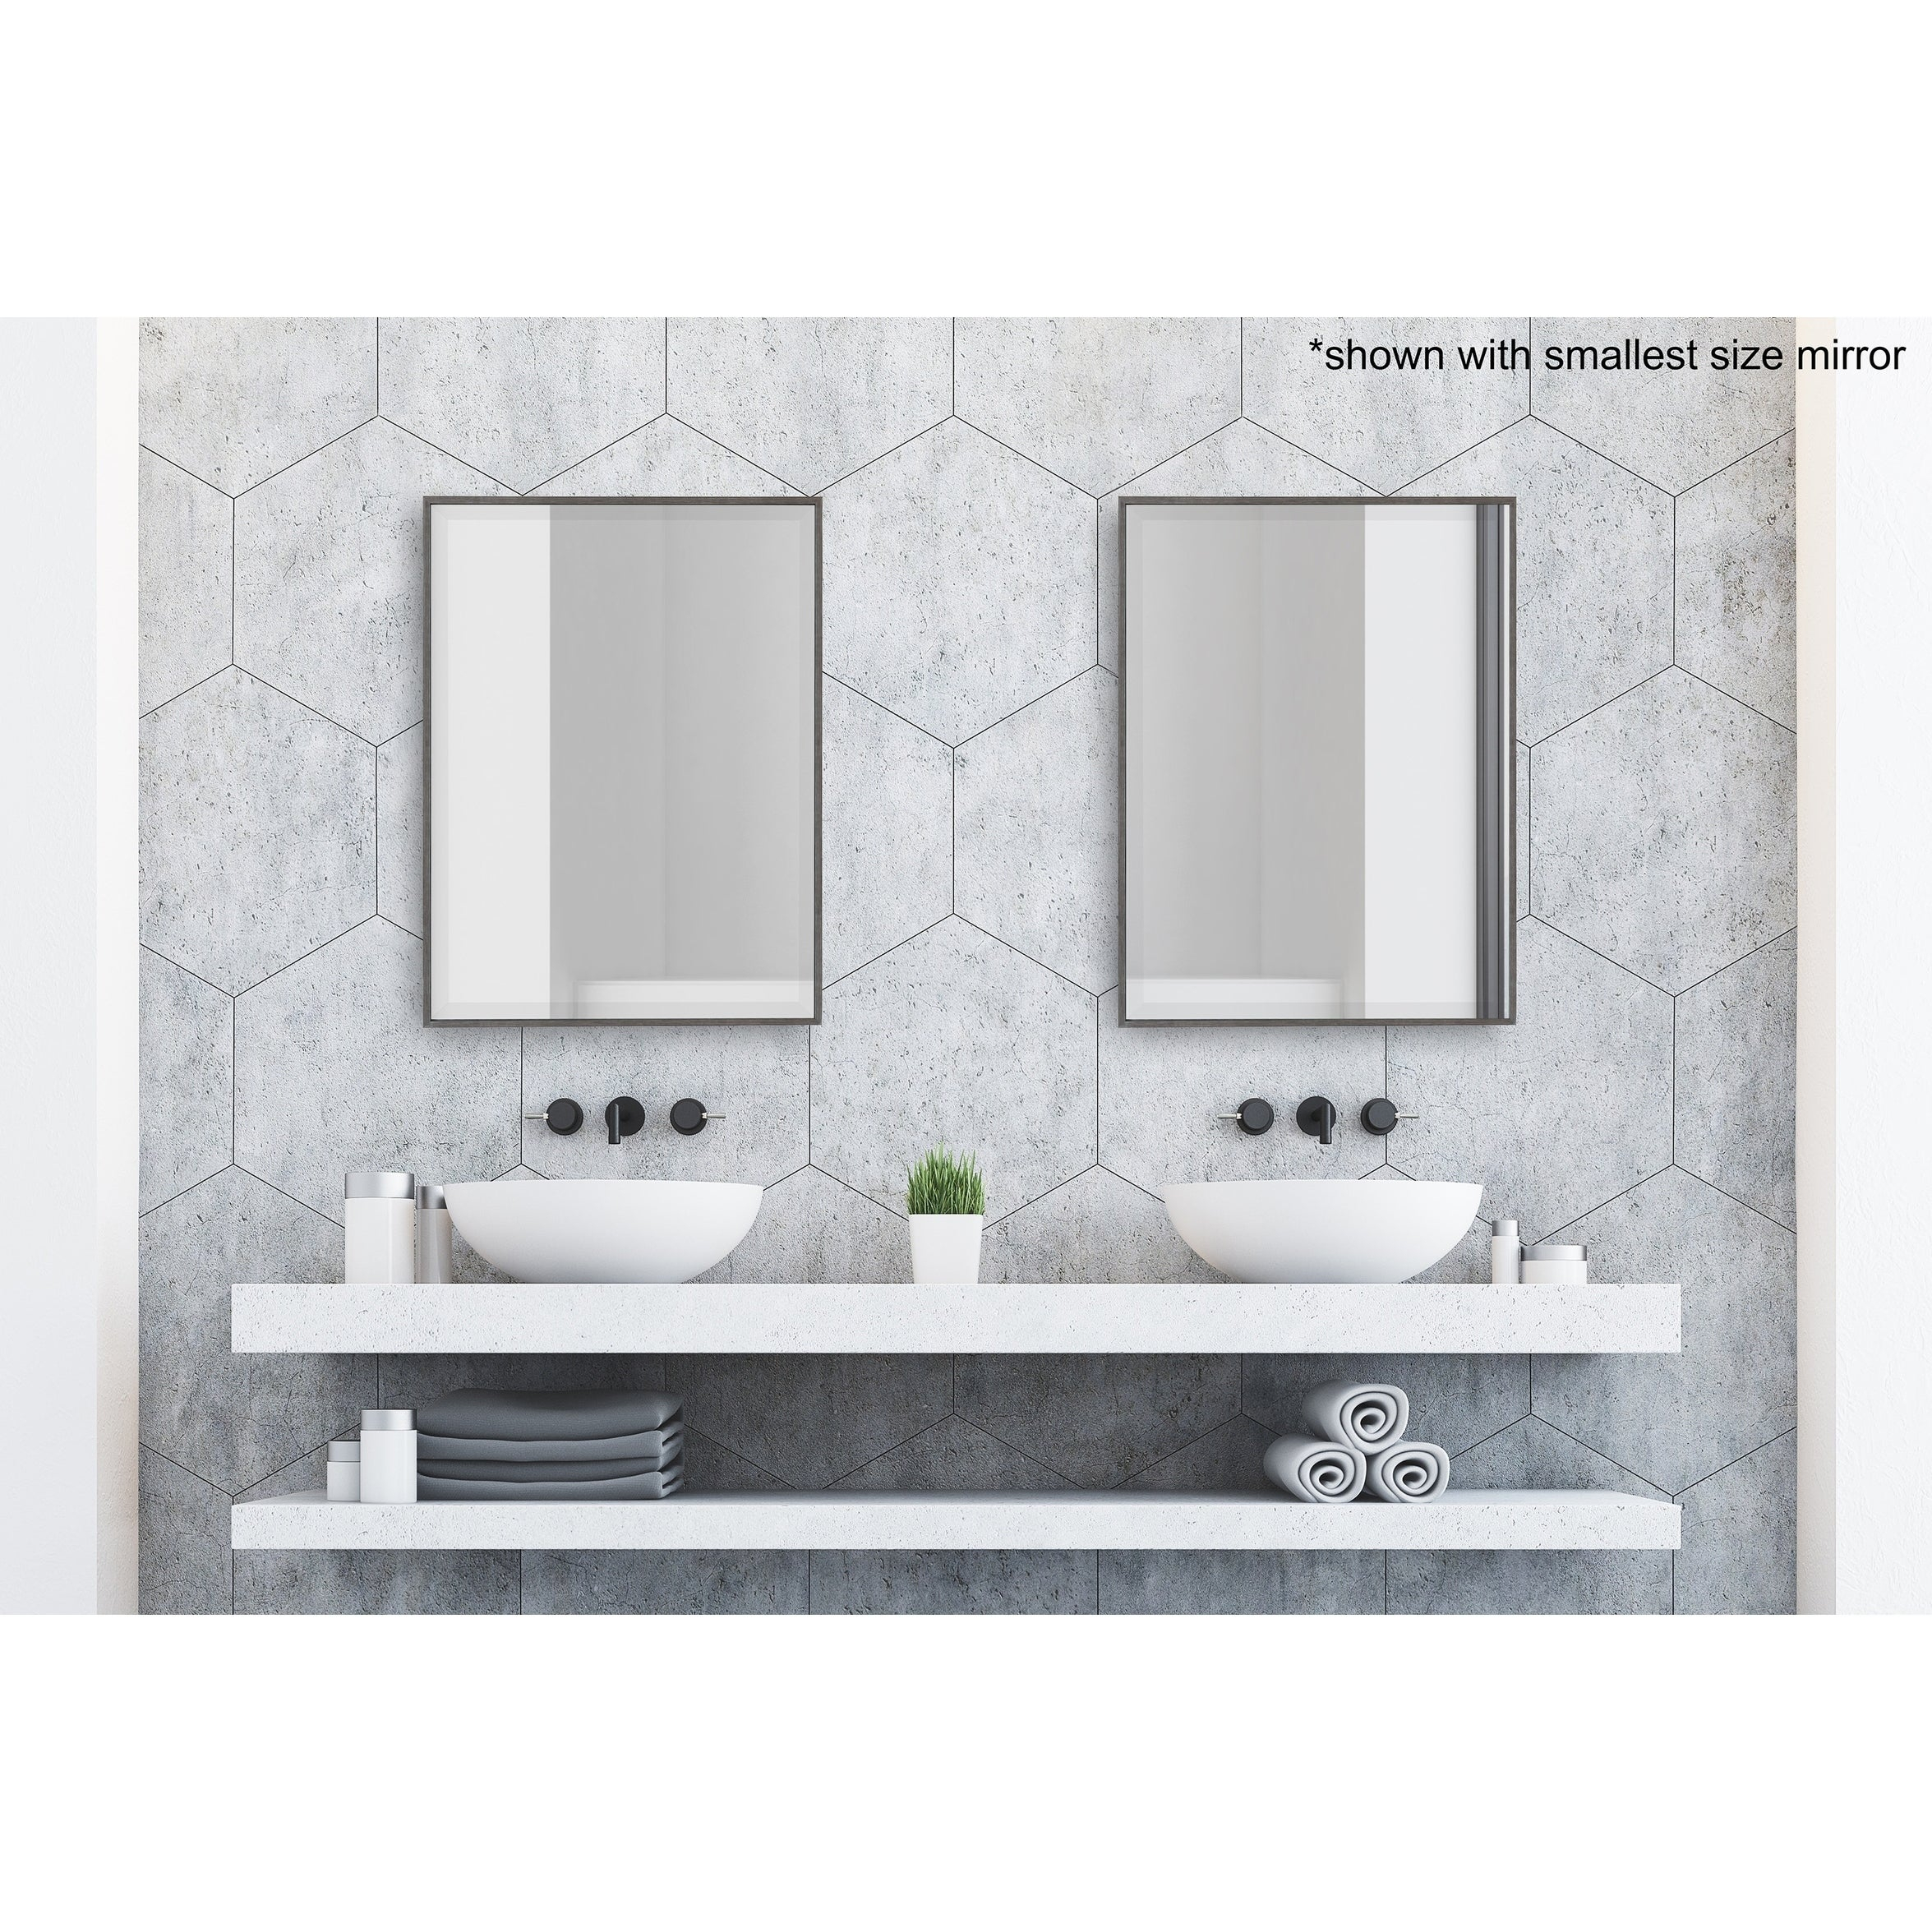 Bathroom Vanity Mirrors | Shop Online At Overstock With Regard To Landover Rustic Distressed Bathroom/vanity Mirrors (View 4 of 30)